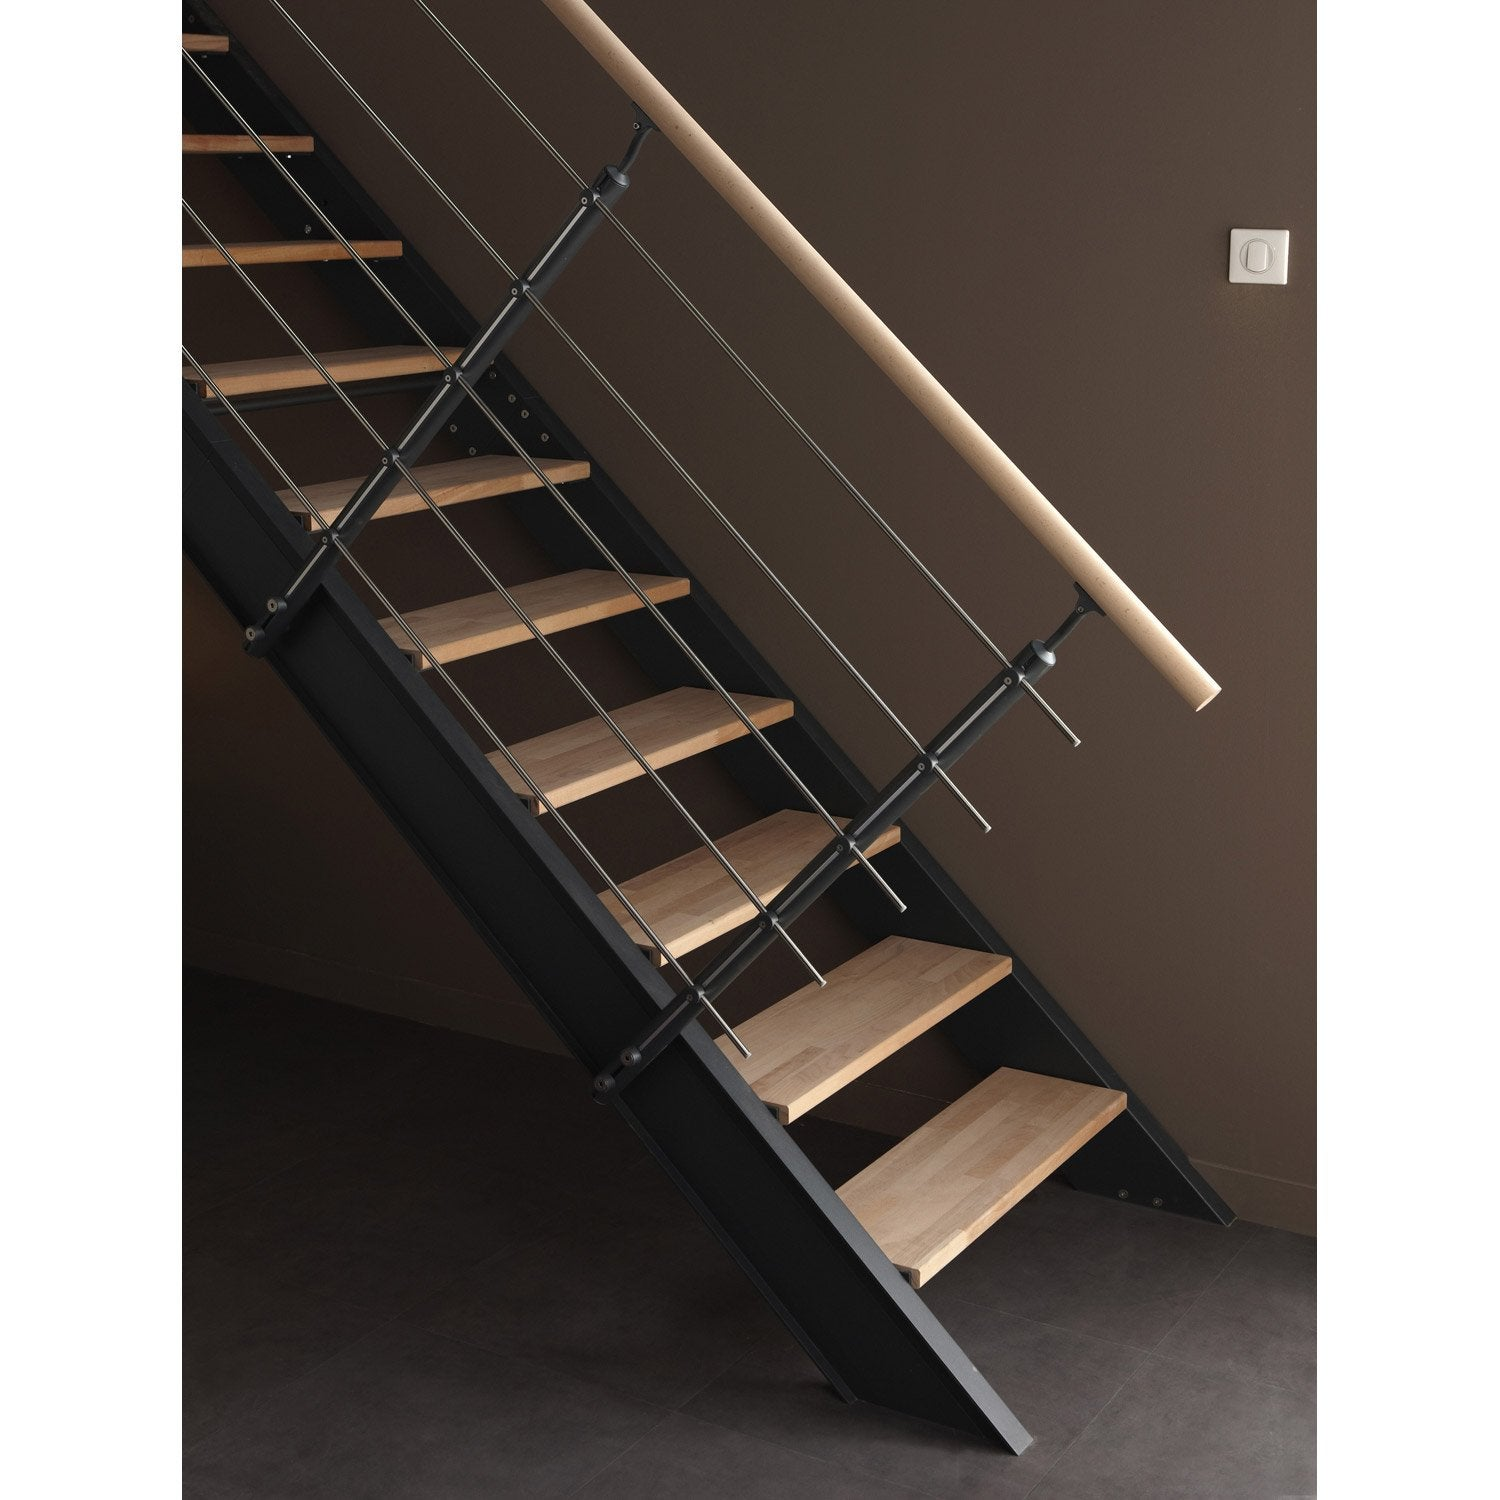 montage escalier leroy merlin montage escalier escamotable 5 mots cl s mesure montage escalier. Black Bedroom Furniture Sets. Home Design Ideas